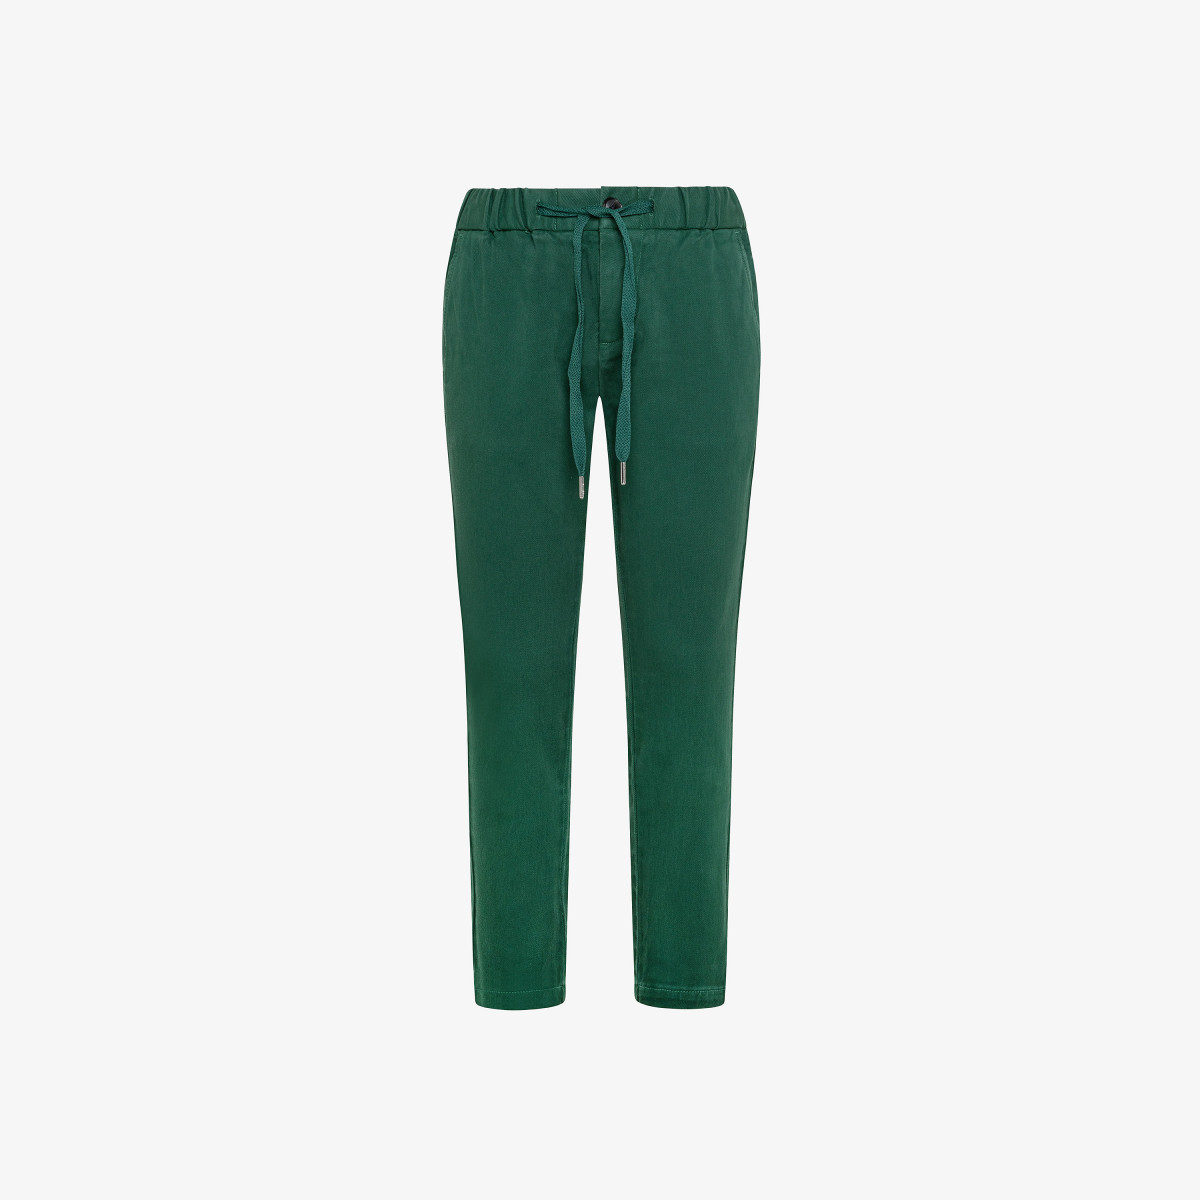 BOY'S PANT COULISSE MILITARY